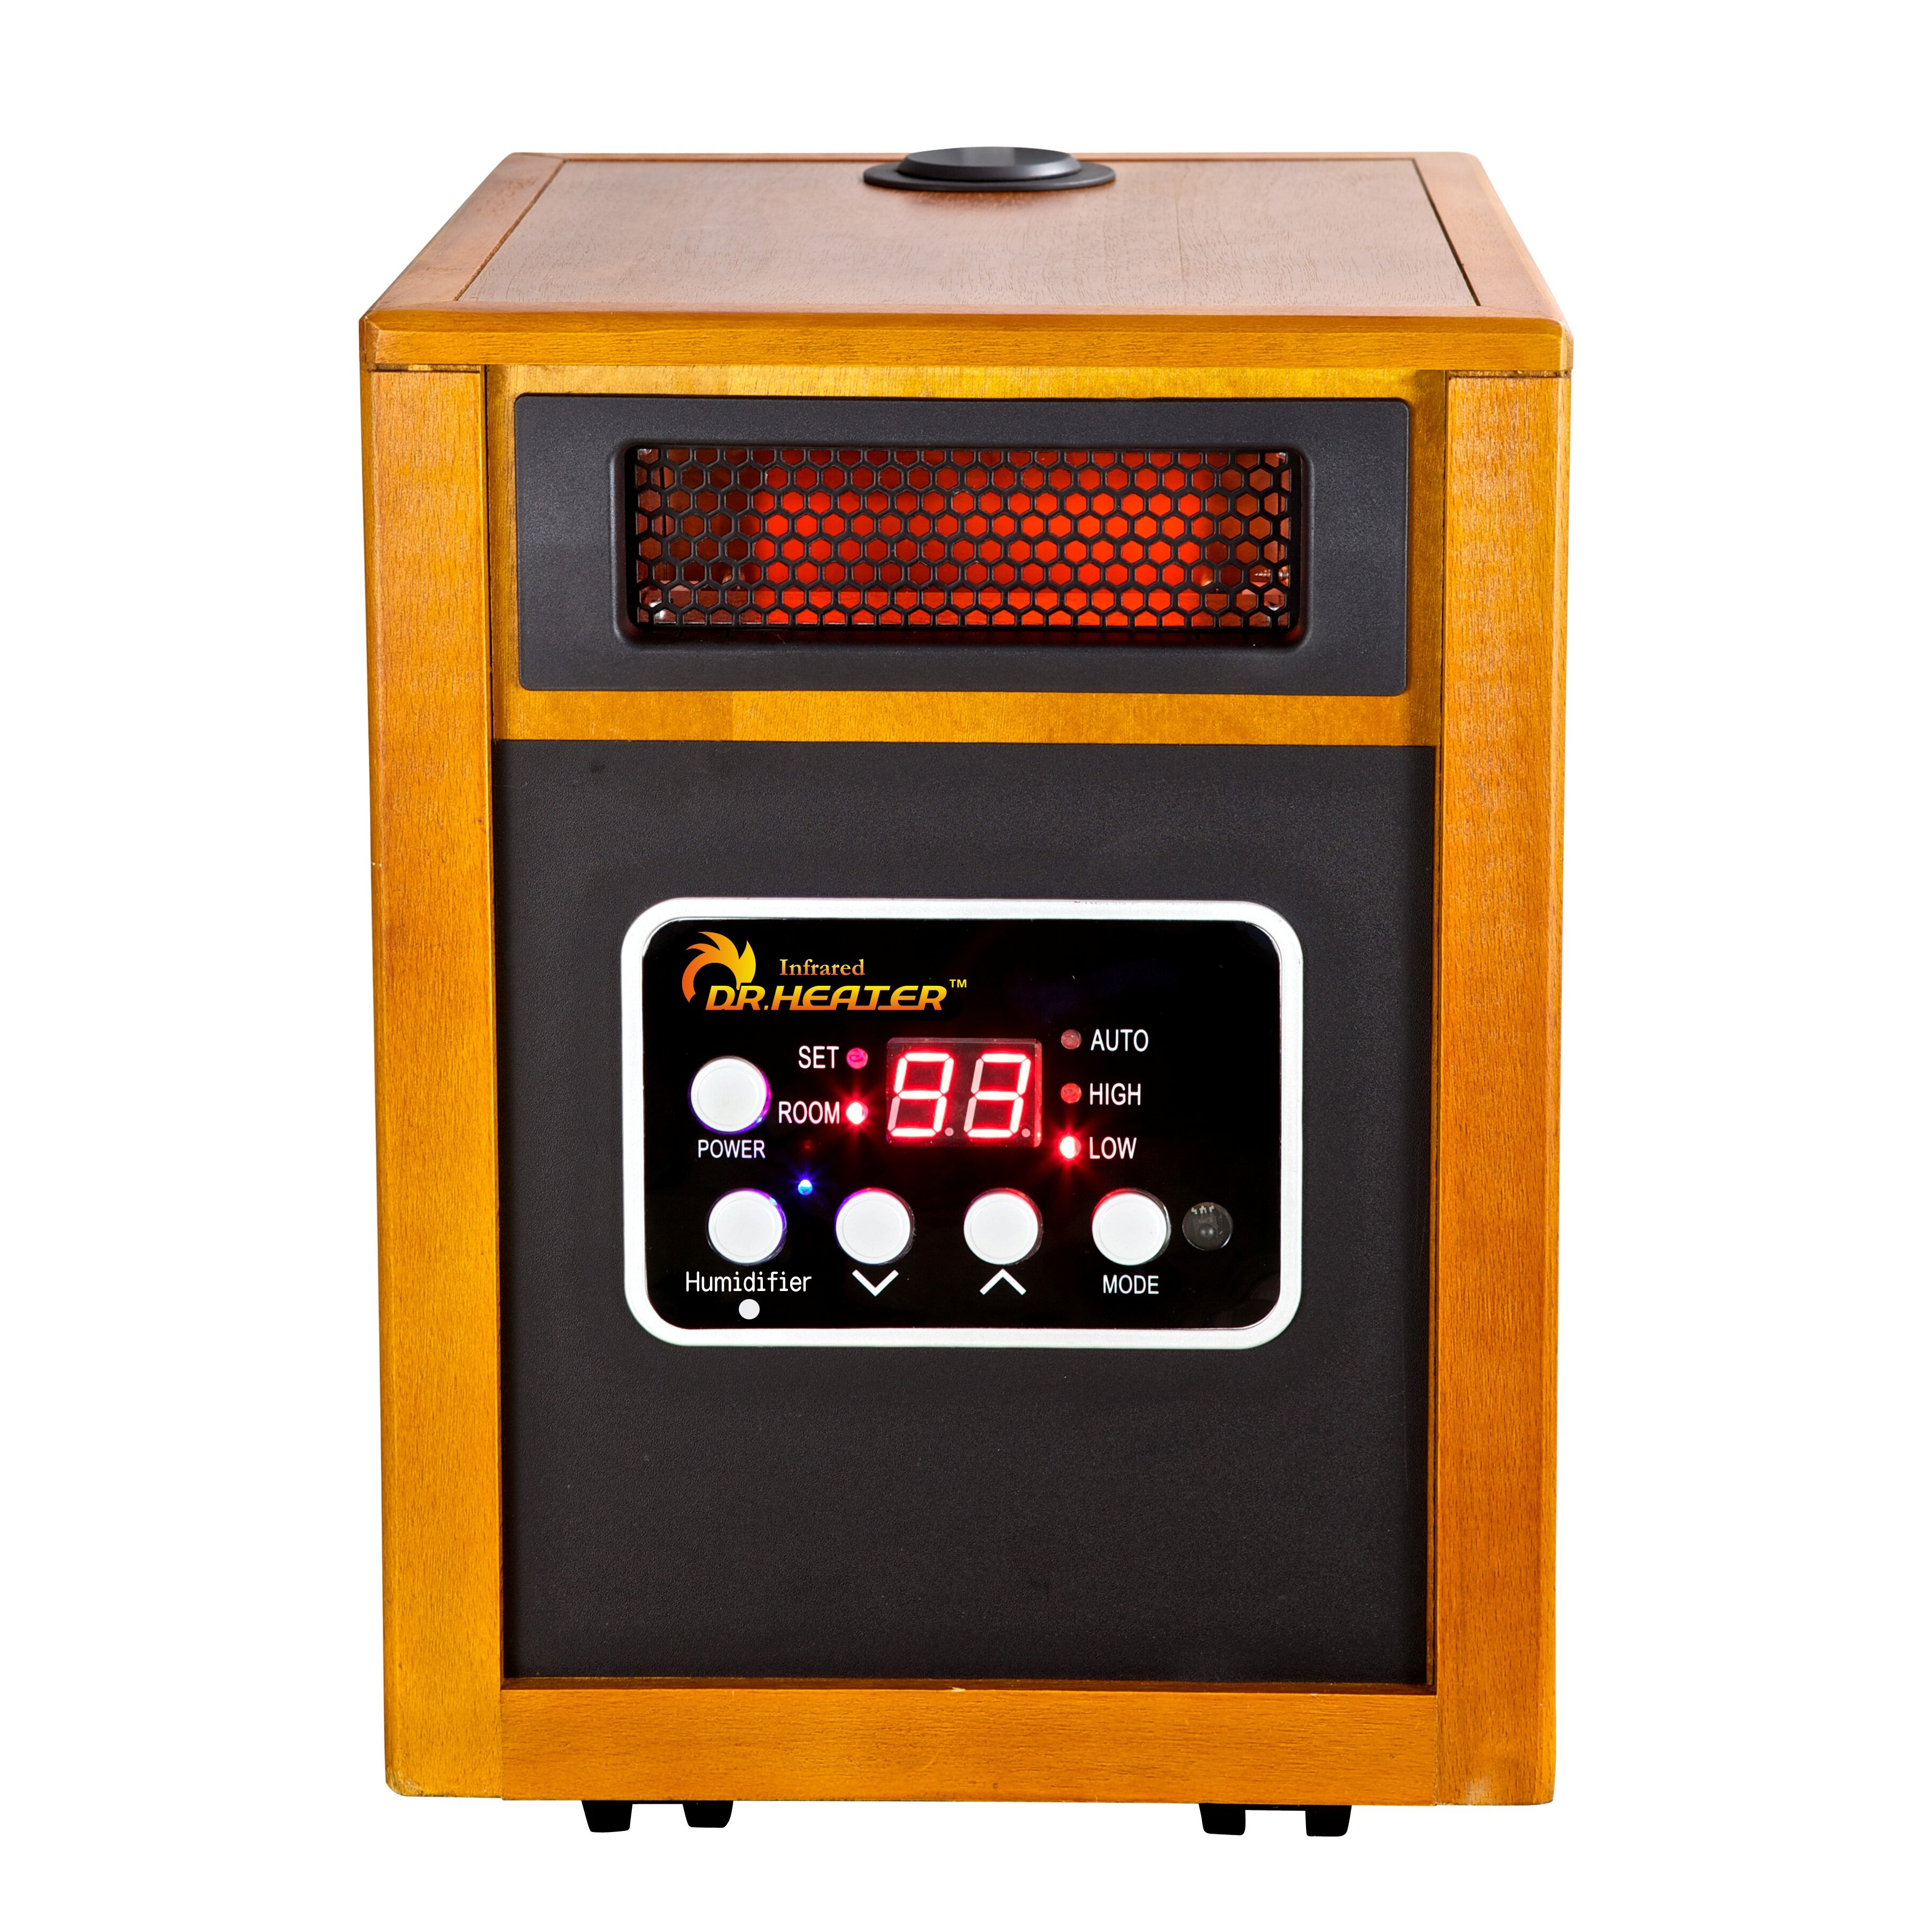 Heating & Cooling Electric Space Heaters Dr. Infrared Heater SKU #C38B08